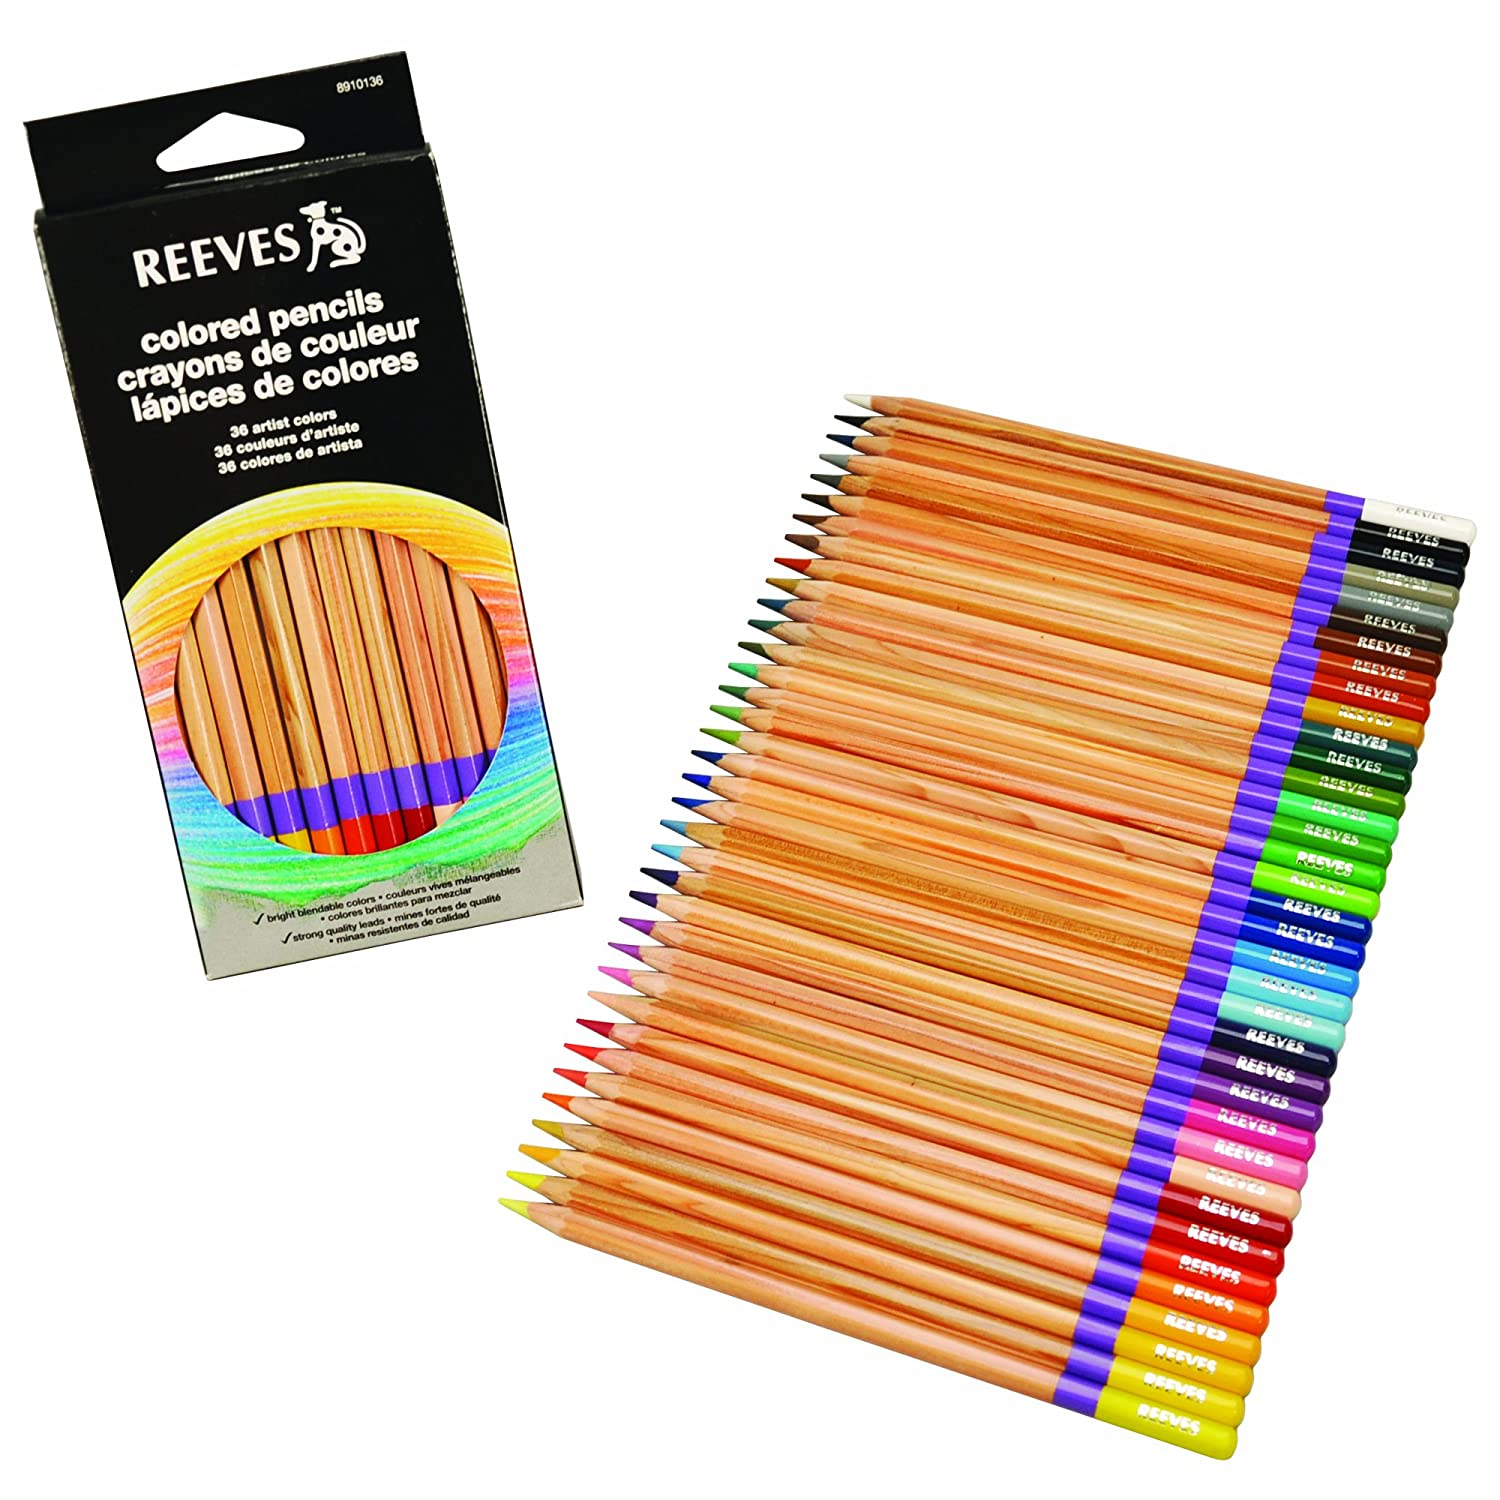 amazoncom reeves colored pencils set of 36 arts crafts sewing